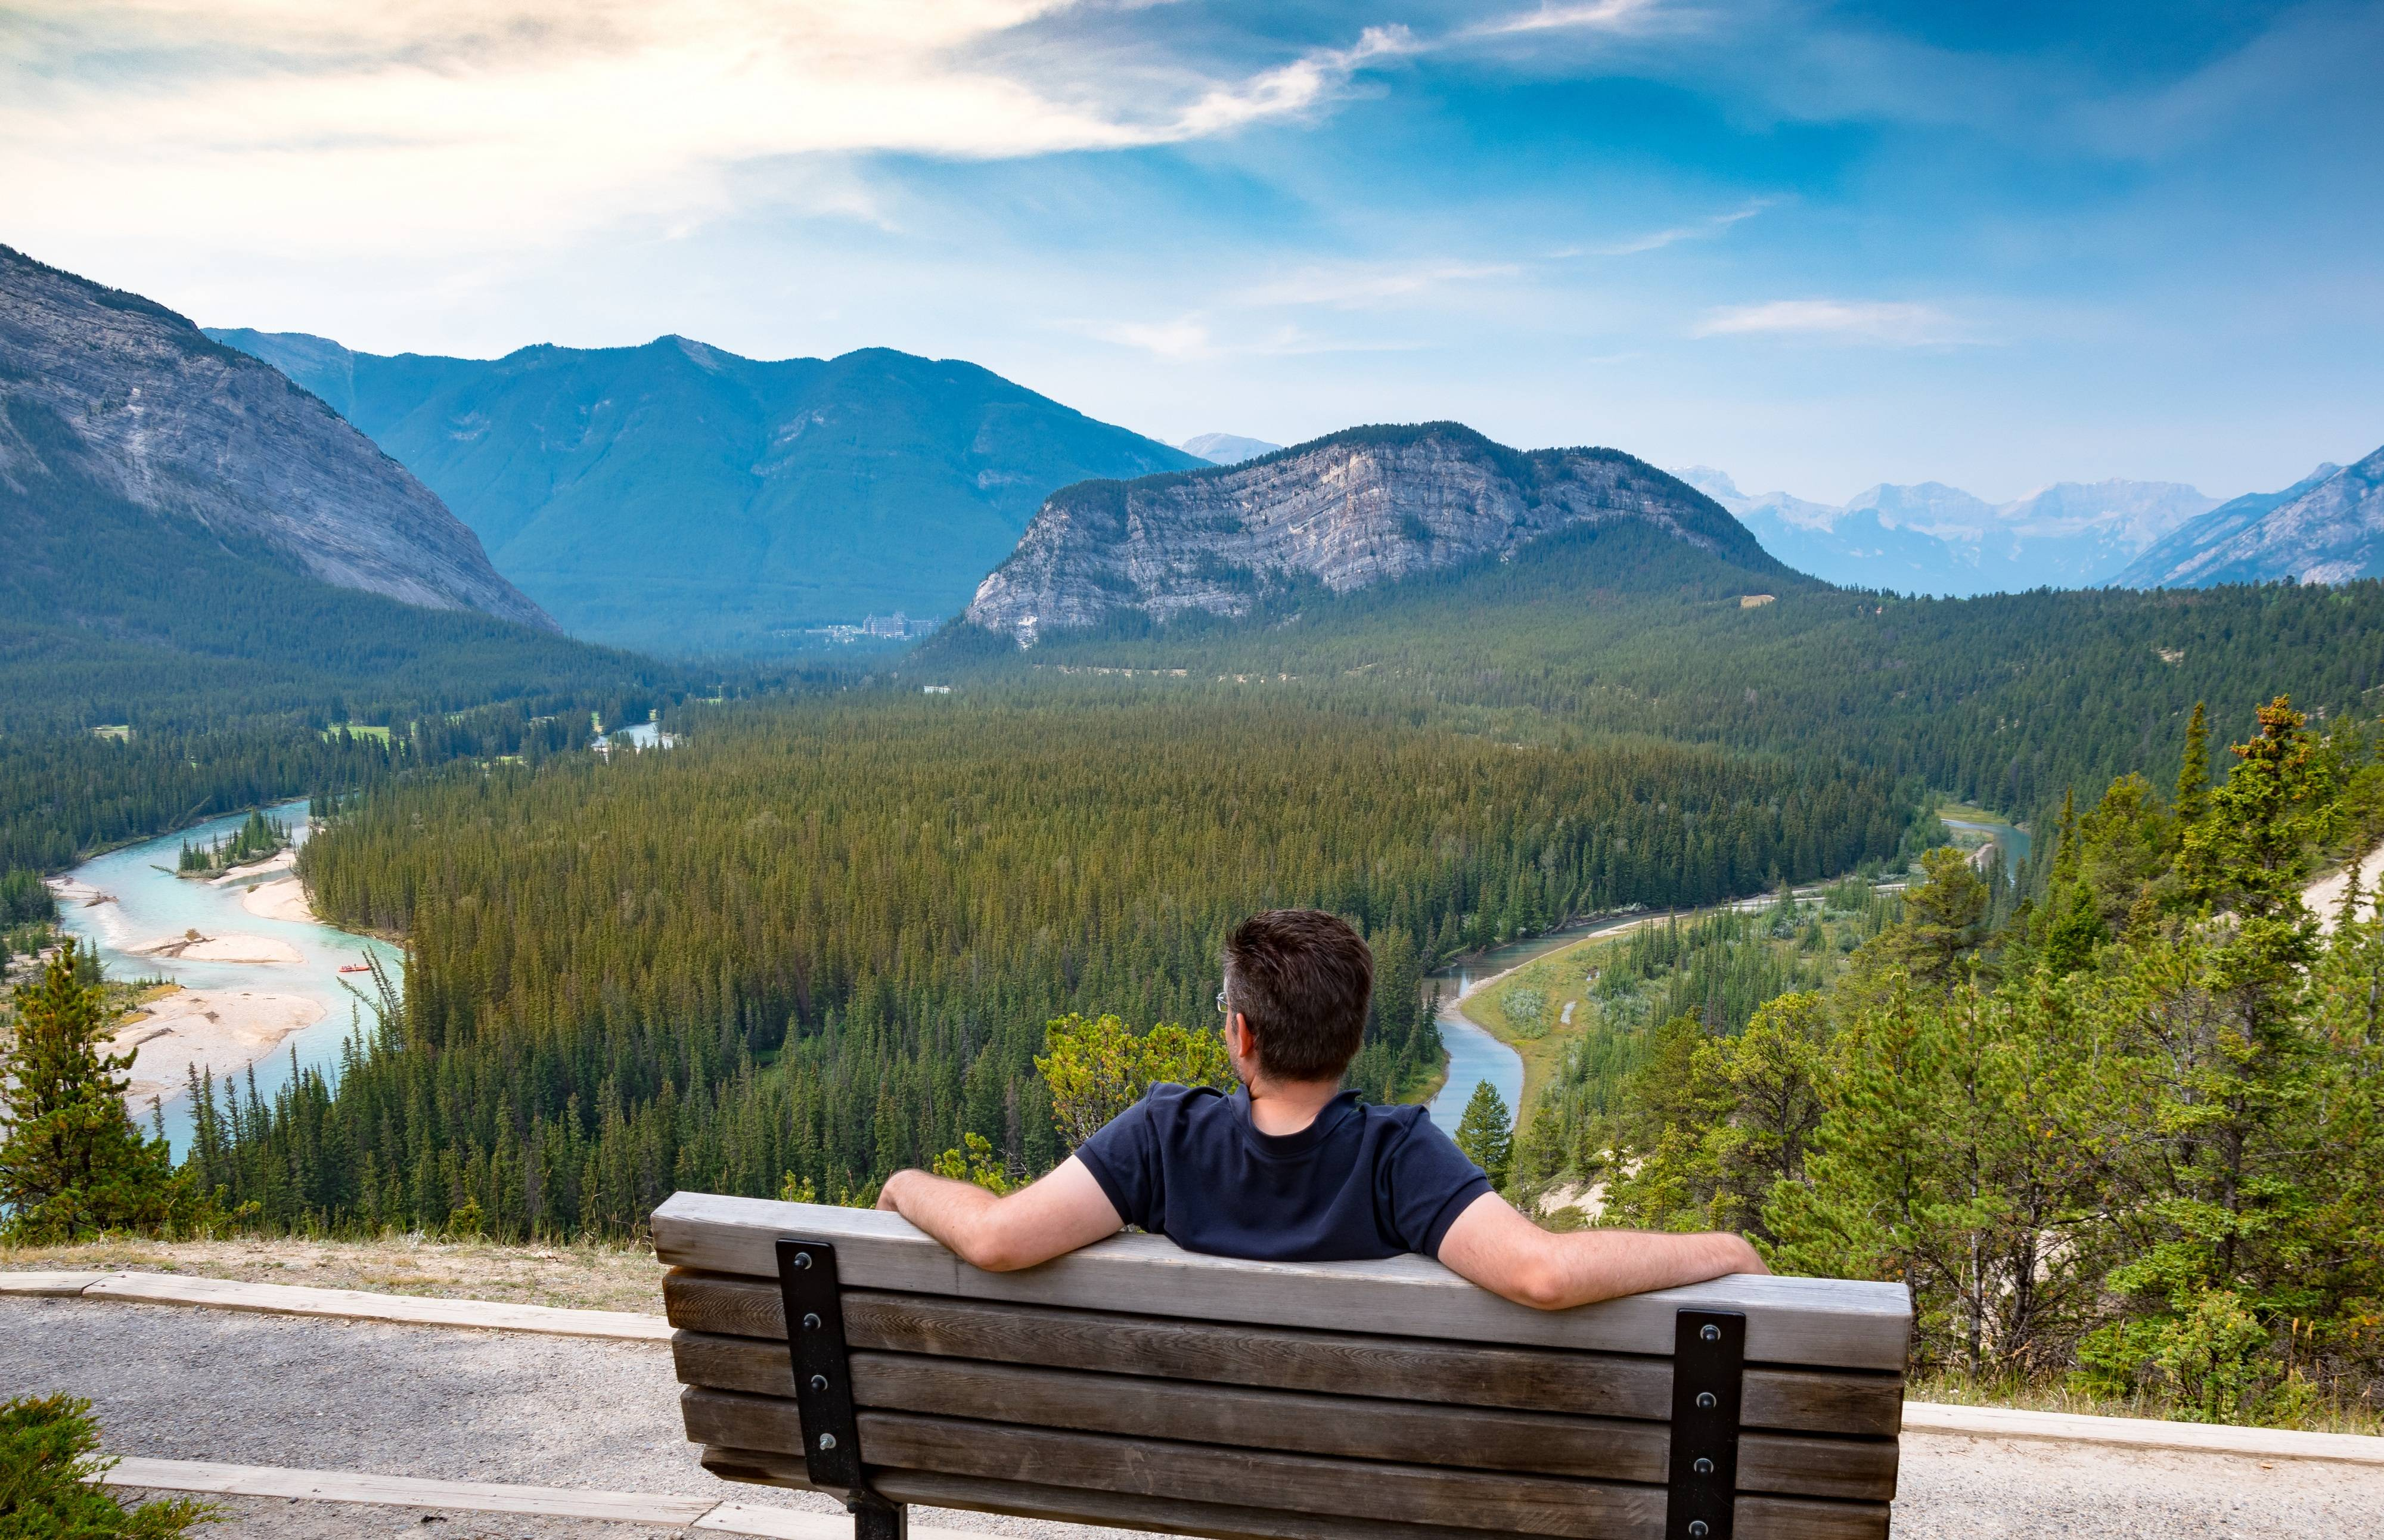 9-Day Canadian Rockies Tour From San Francisco